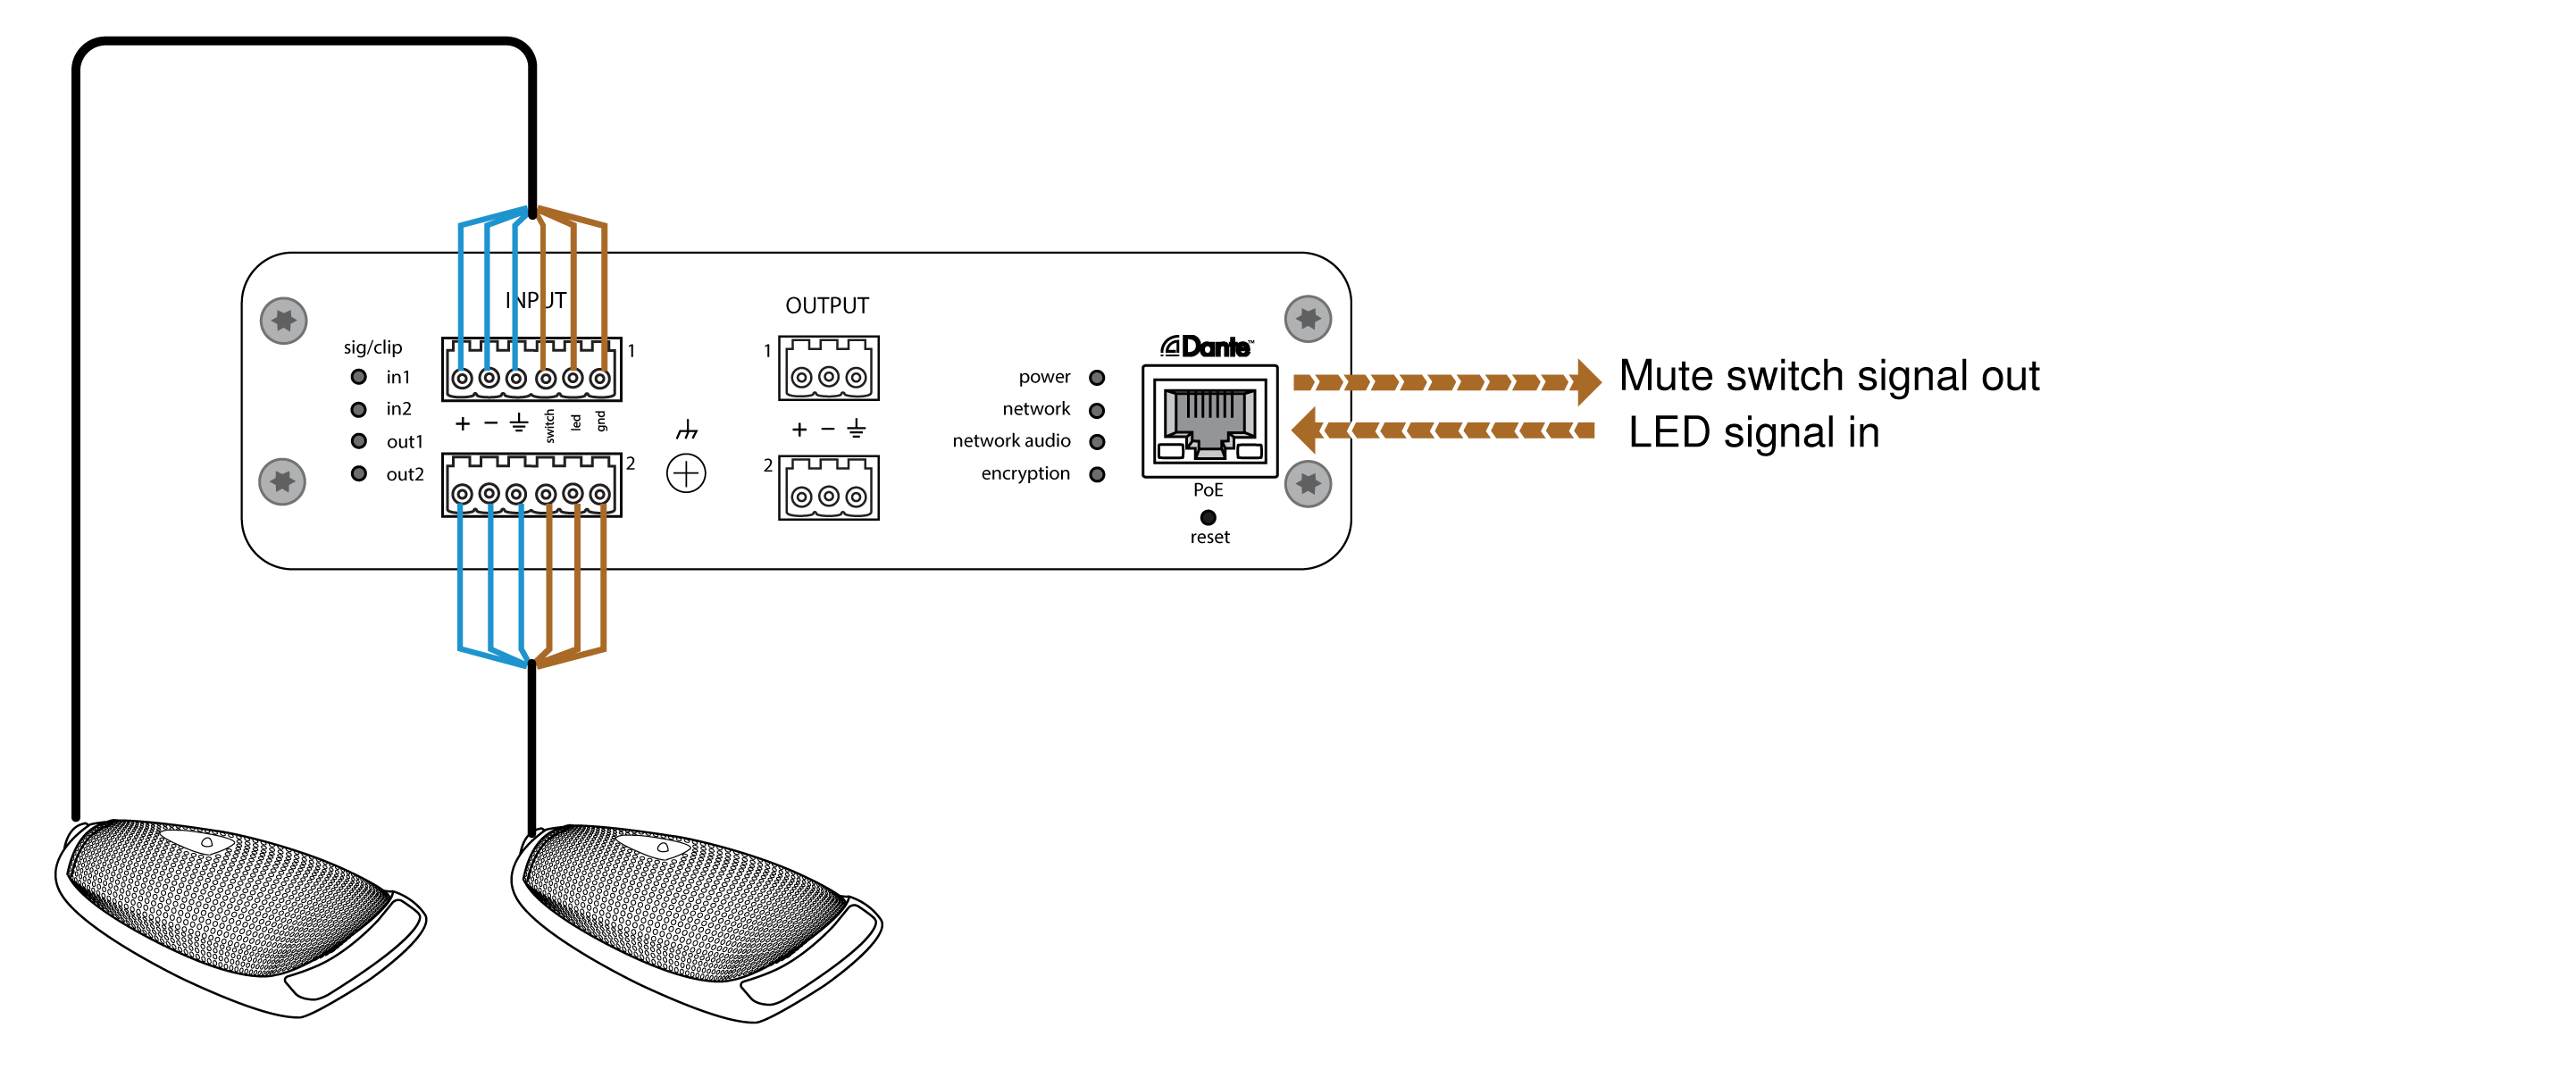 Shure Publications User Guides Ani22 Audio Mixer Inverting Summing Circuit Diagram The Microphones Receive Logic Signals Led So That Microphone Behavior Reflects State Of Entire System